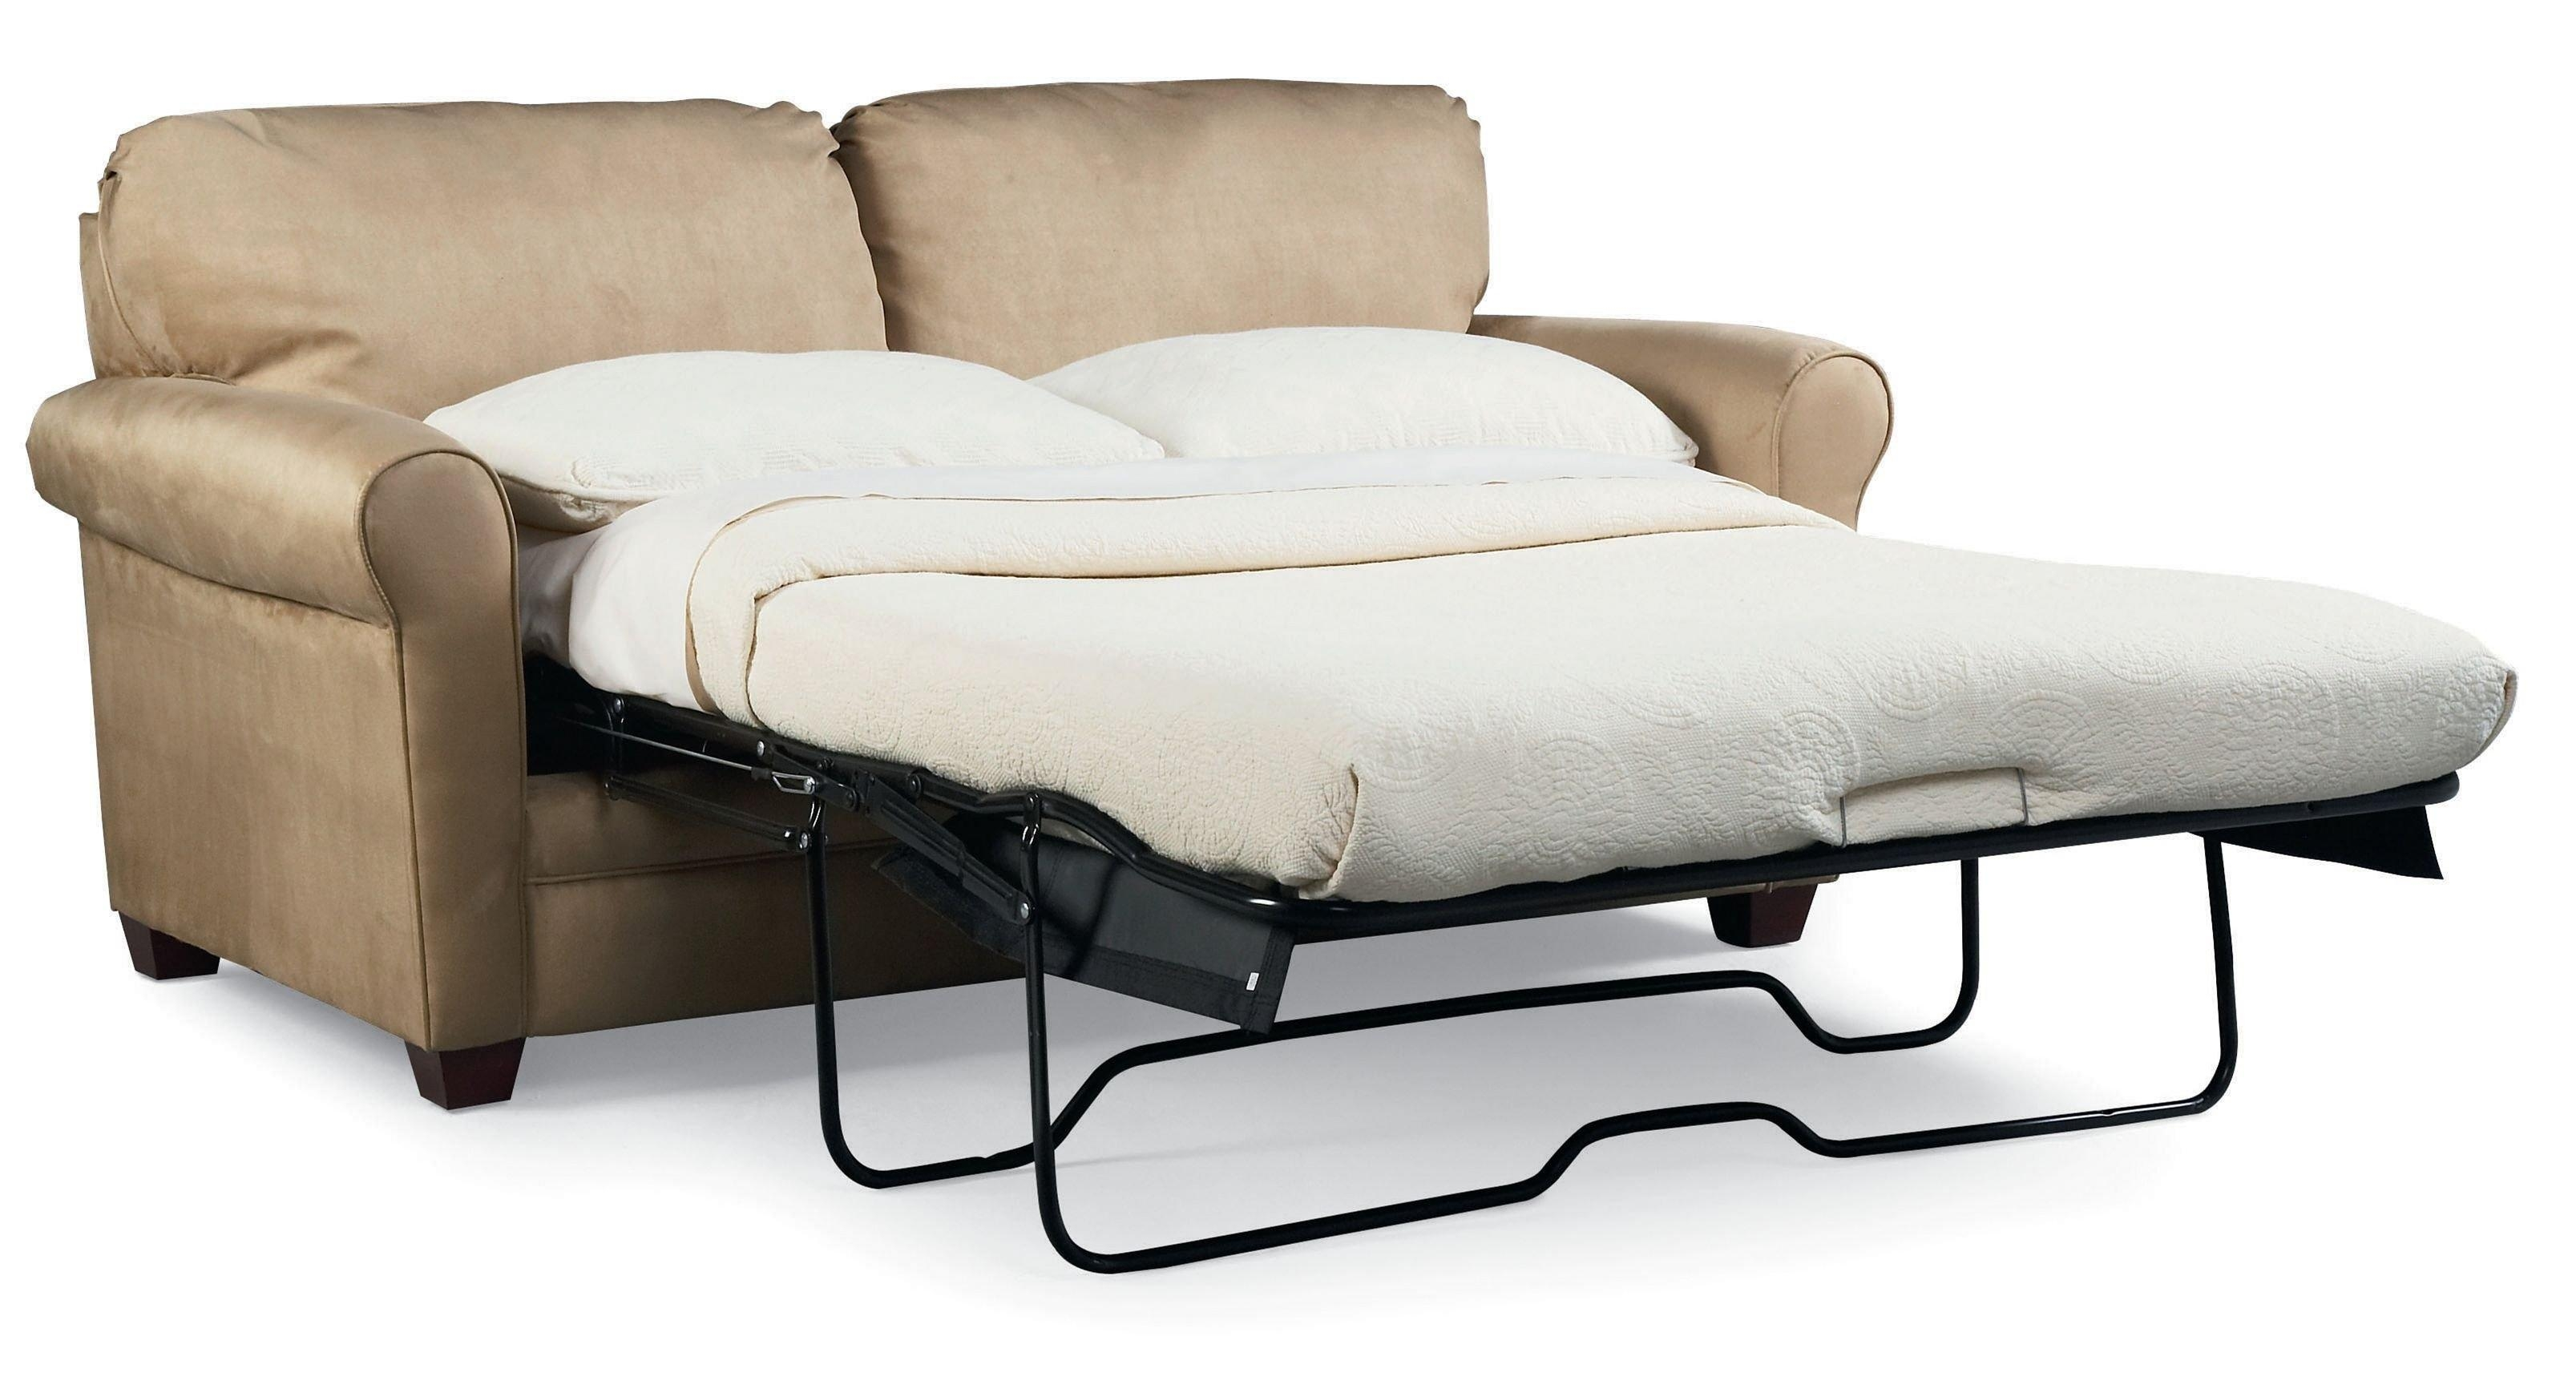 Sofas Center : Curved Full Sofa Beds On Salefull Sheets Mattress With Sofa Beds Sheets (Image 11 of 20)